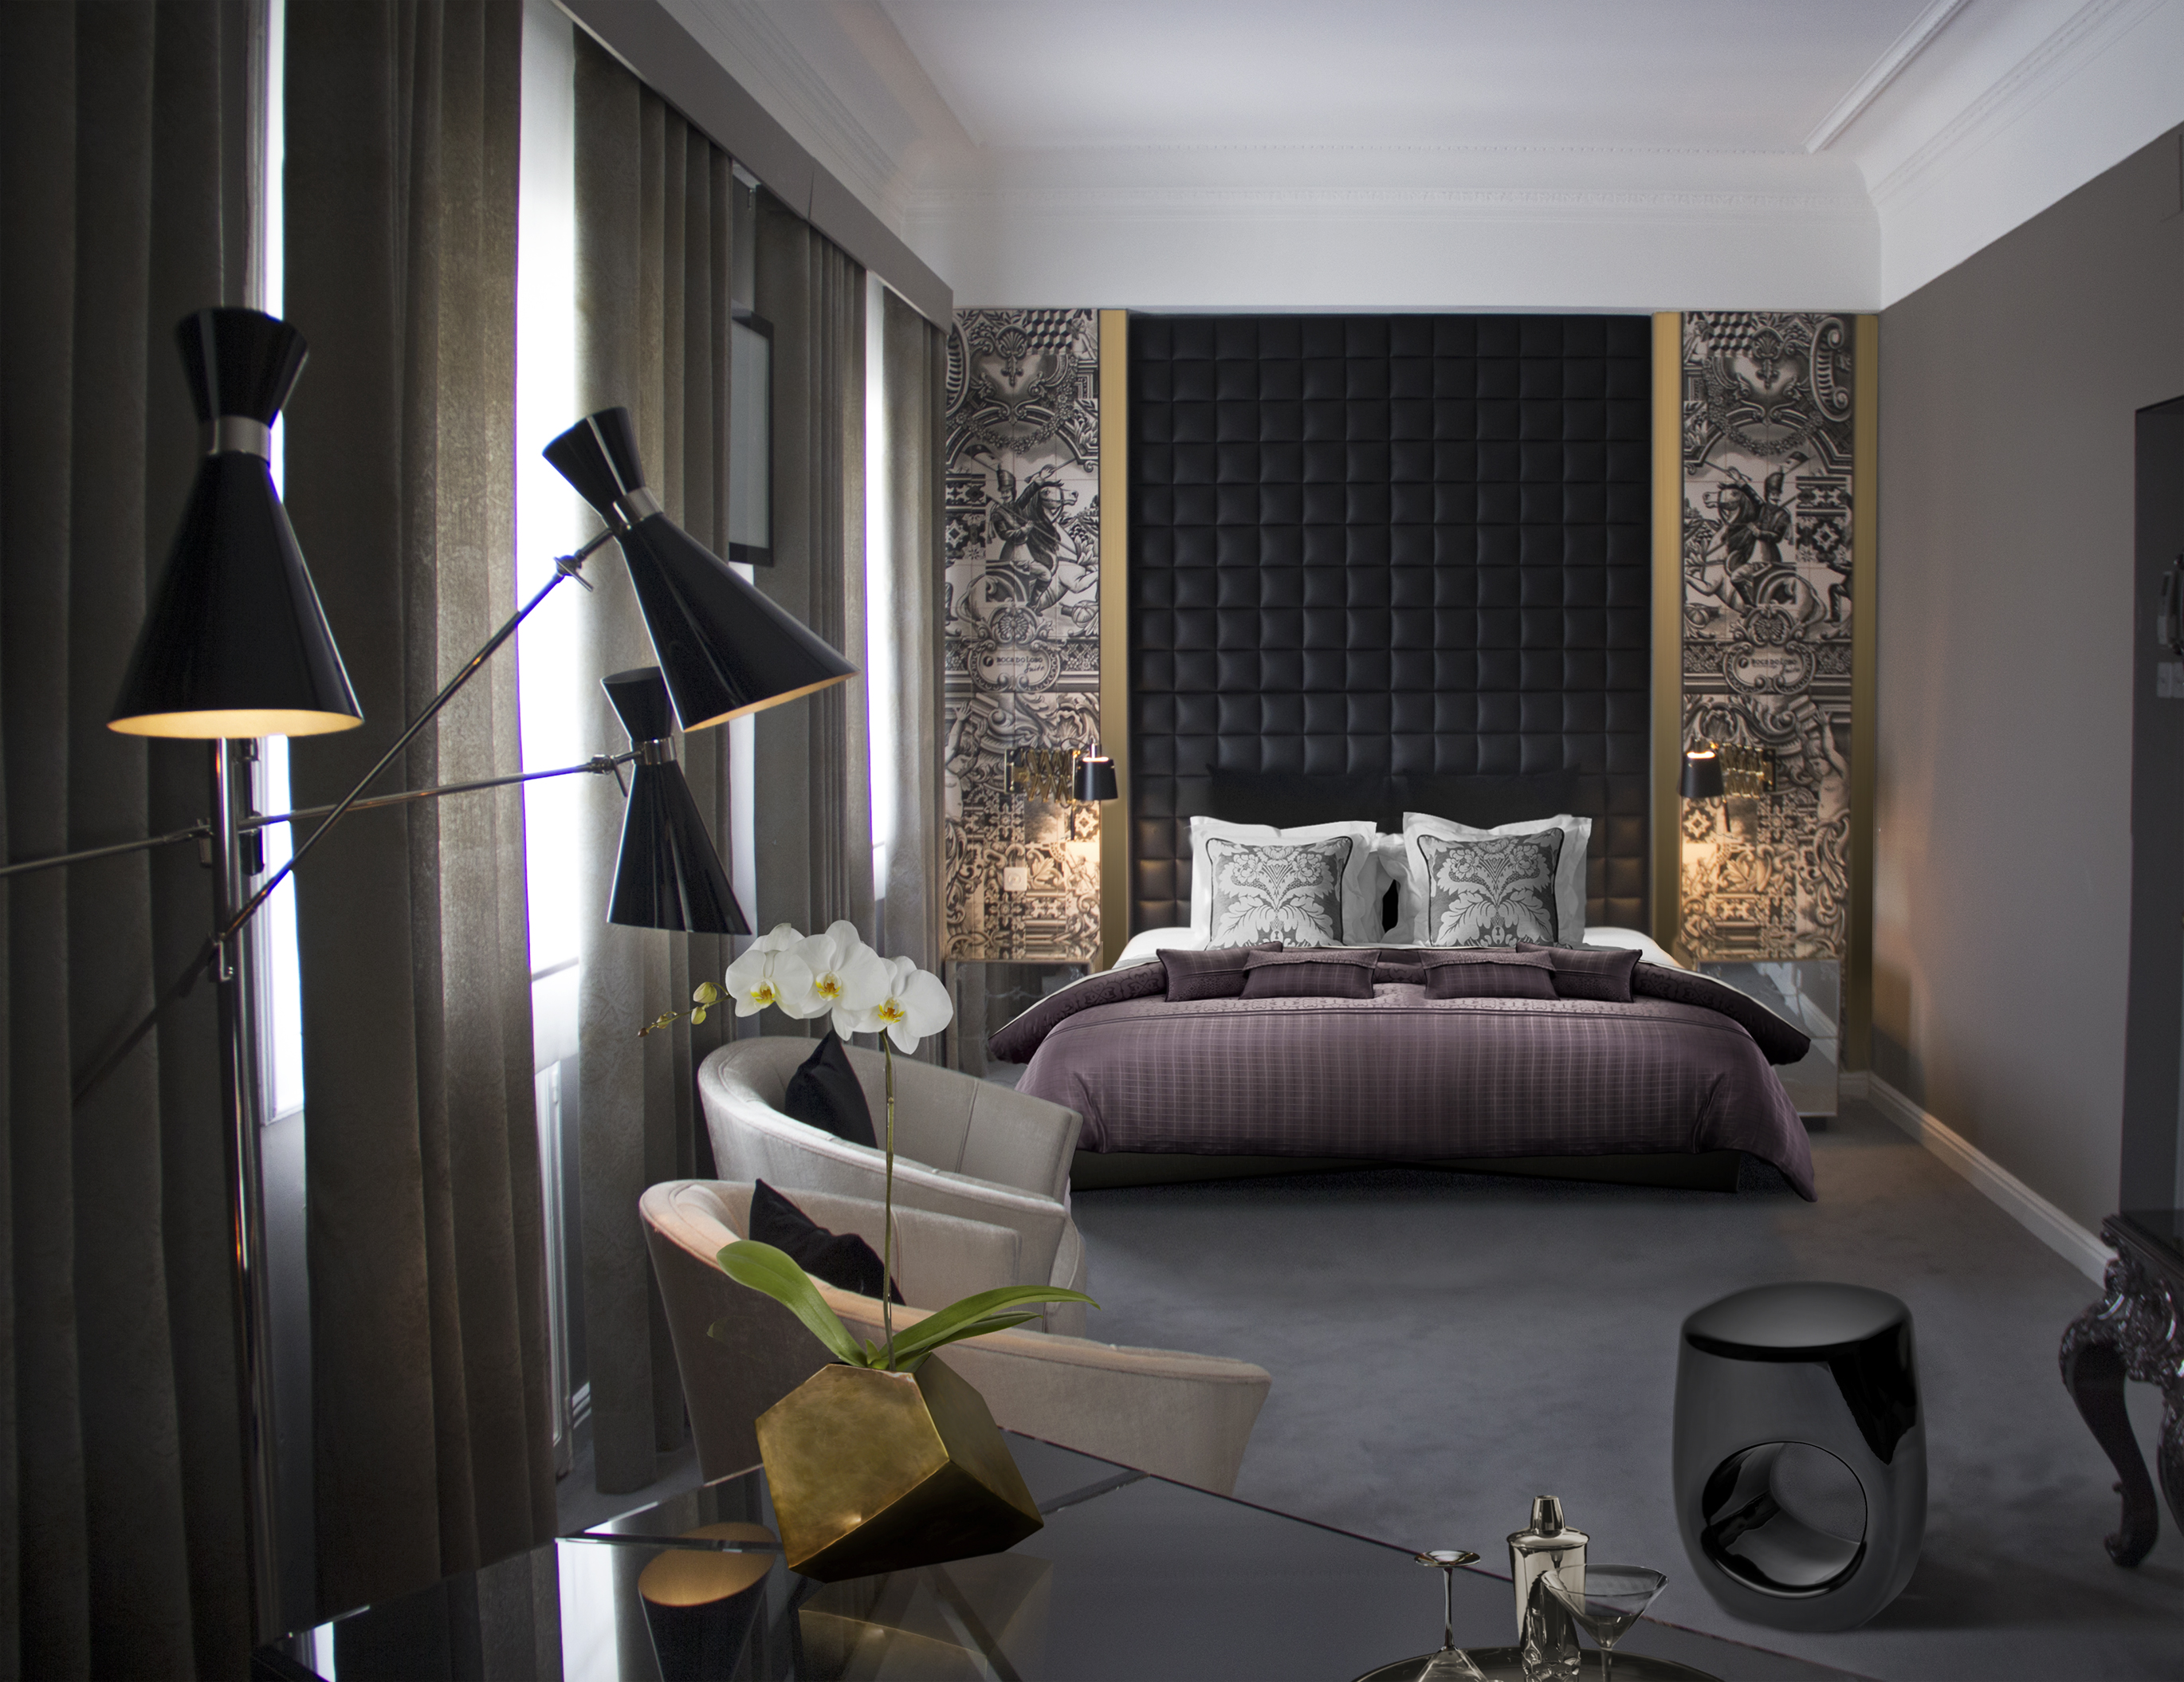 Stunning Lighting Designs to Inspire Your Bedroom Decor (1) lighting design Stunning Lighting Designs to Inspire Your Bedroom Decor Stunning Lighting Designs to Inspire Your Bedroom Decor 7